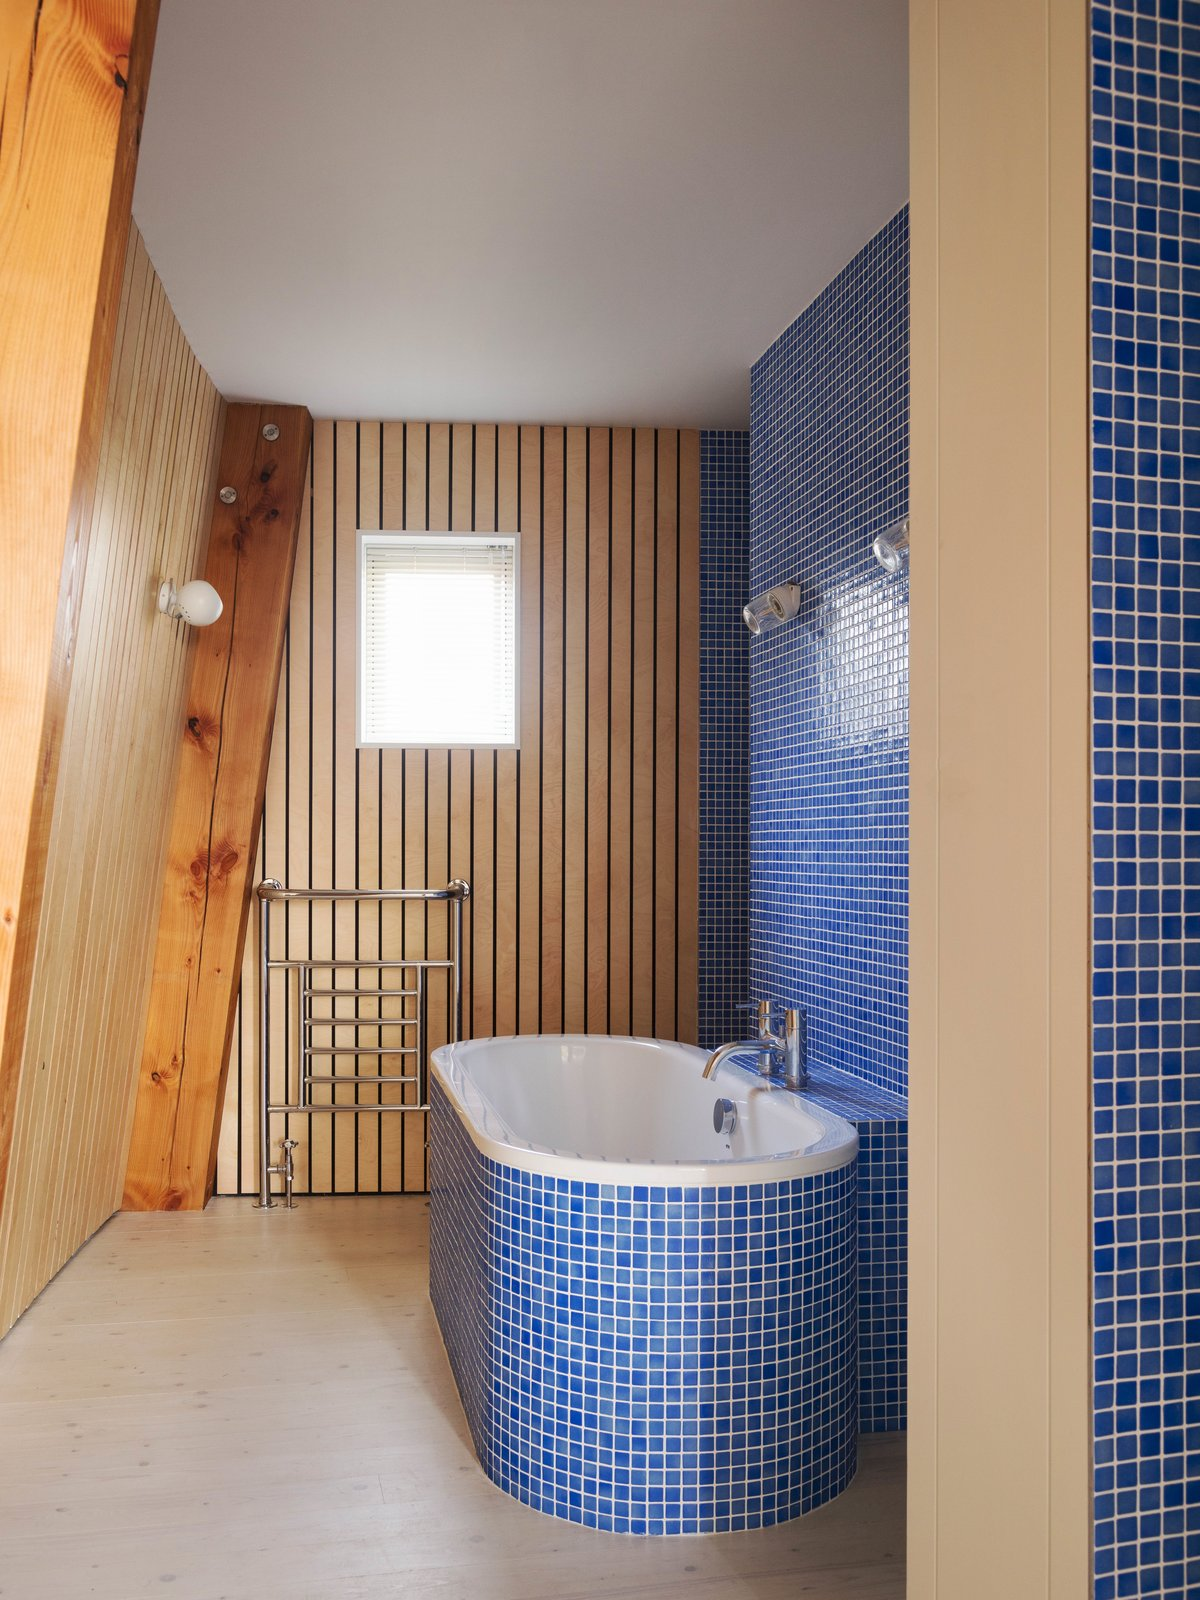 Bath Room, Light Hardwood Floor, Soaking Tub, Wall Lighting, Freestanding Tub, and Ceramic Tile Wall  Photos from Resembling the Inverted Hull of a Ship, an English Guest House Pays Homage to the Harbor